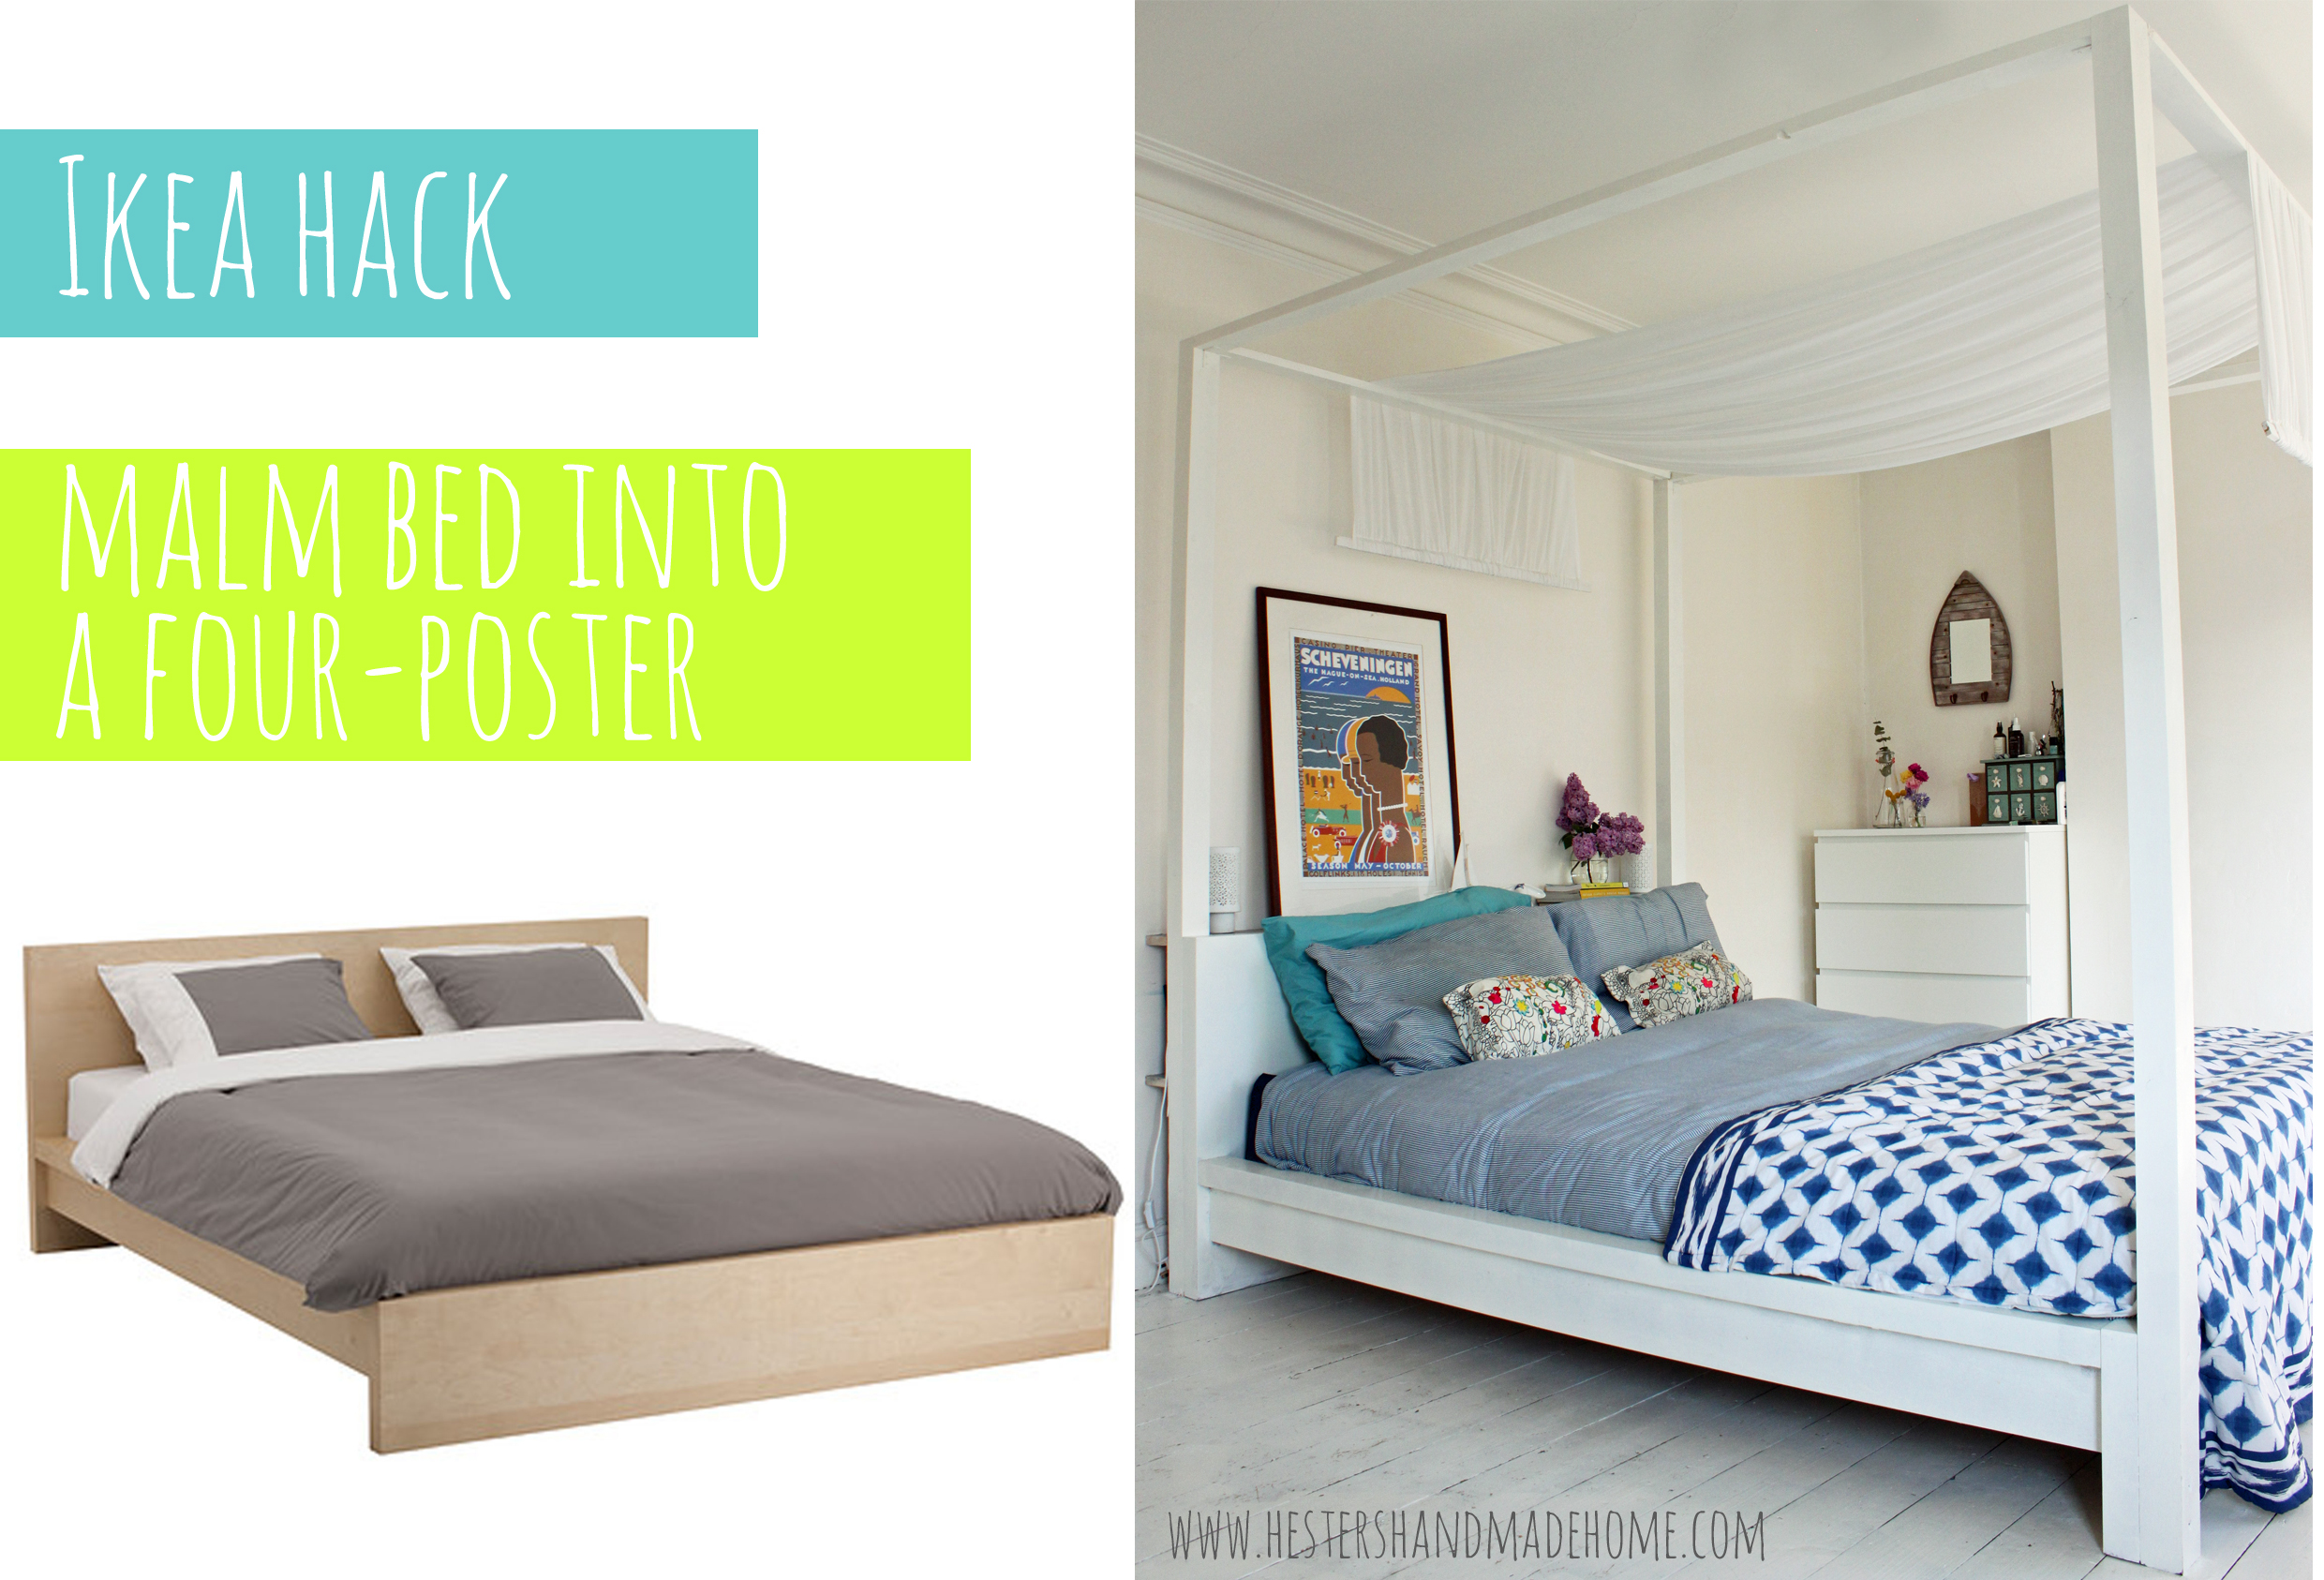 Ikea Hack Malm Bed Into A Four Poster Hester S Handmade Home